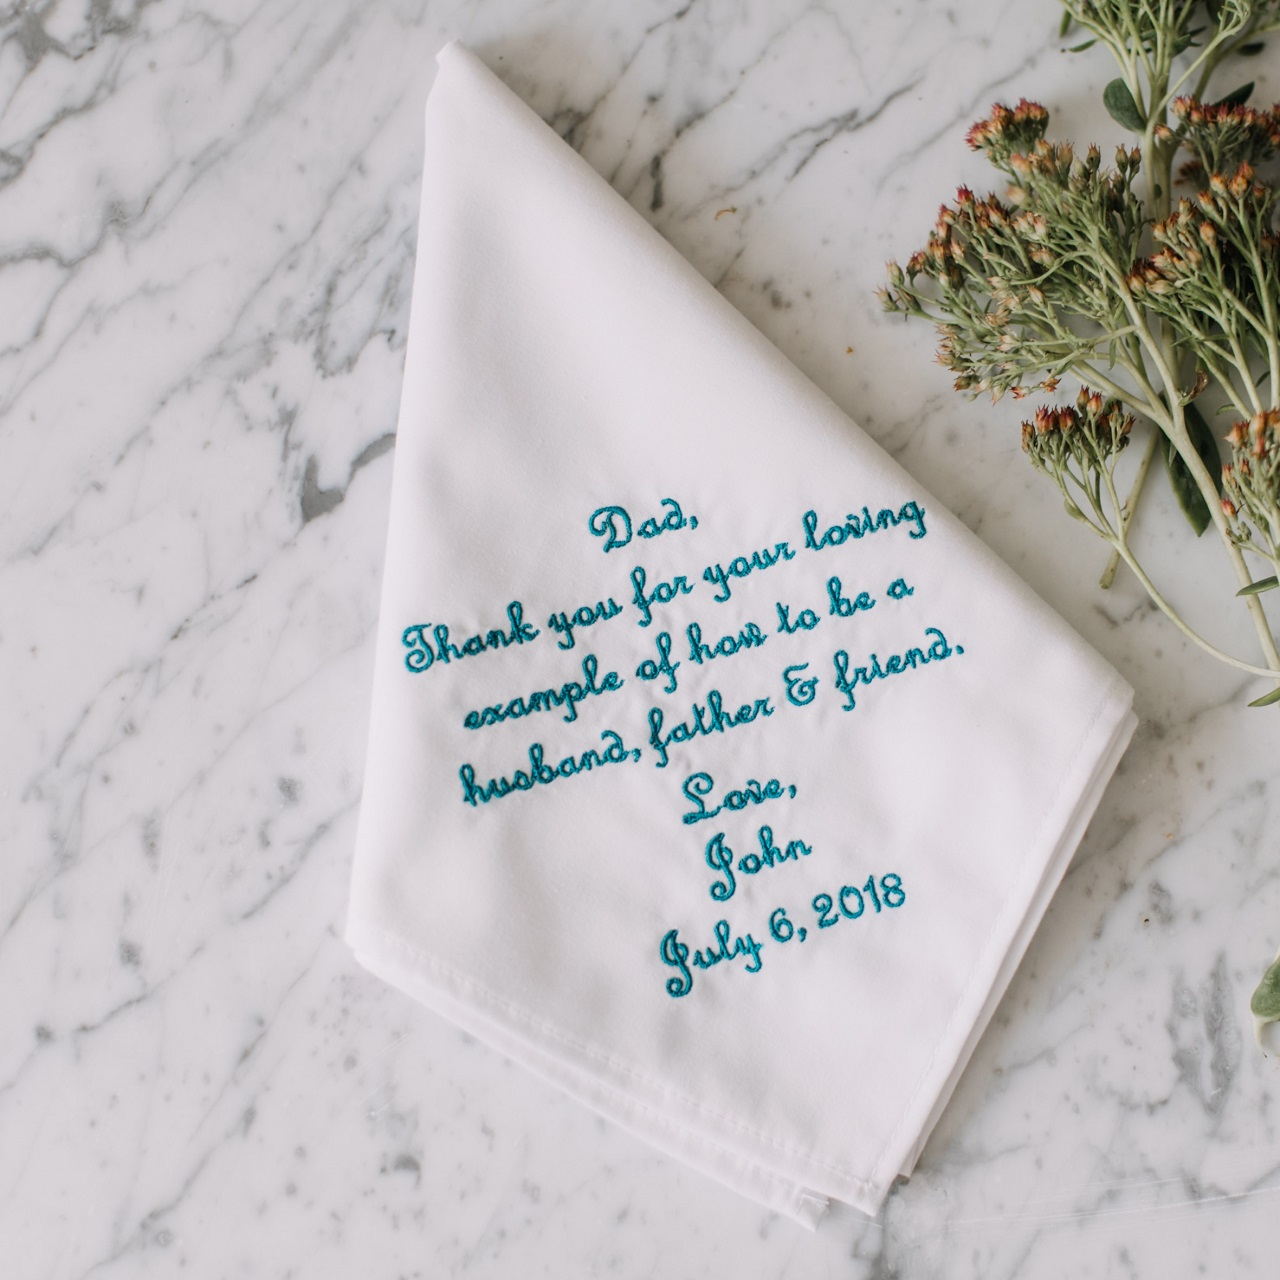 f0bb6e900a8 NEW  Wedding Handkerchiefs for the Father of the Groom   More - the ...